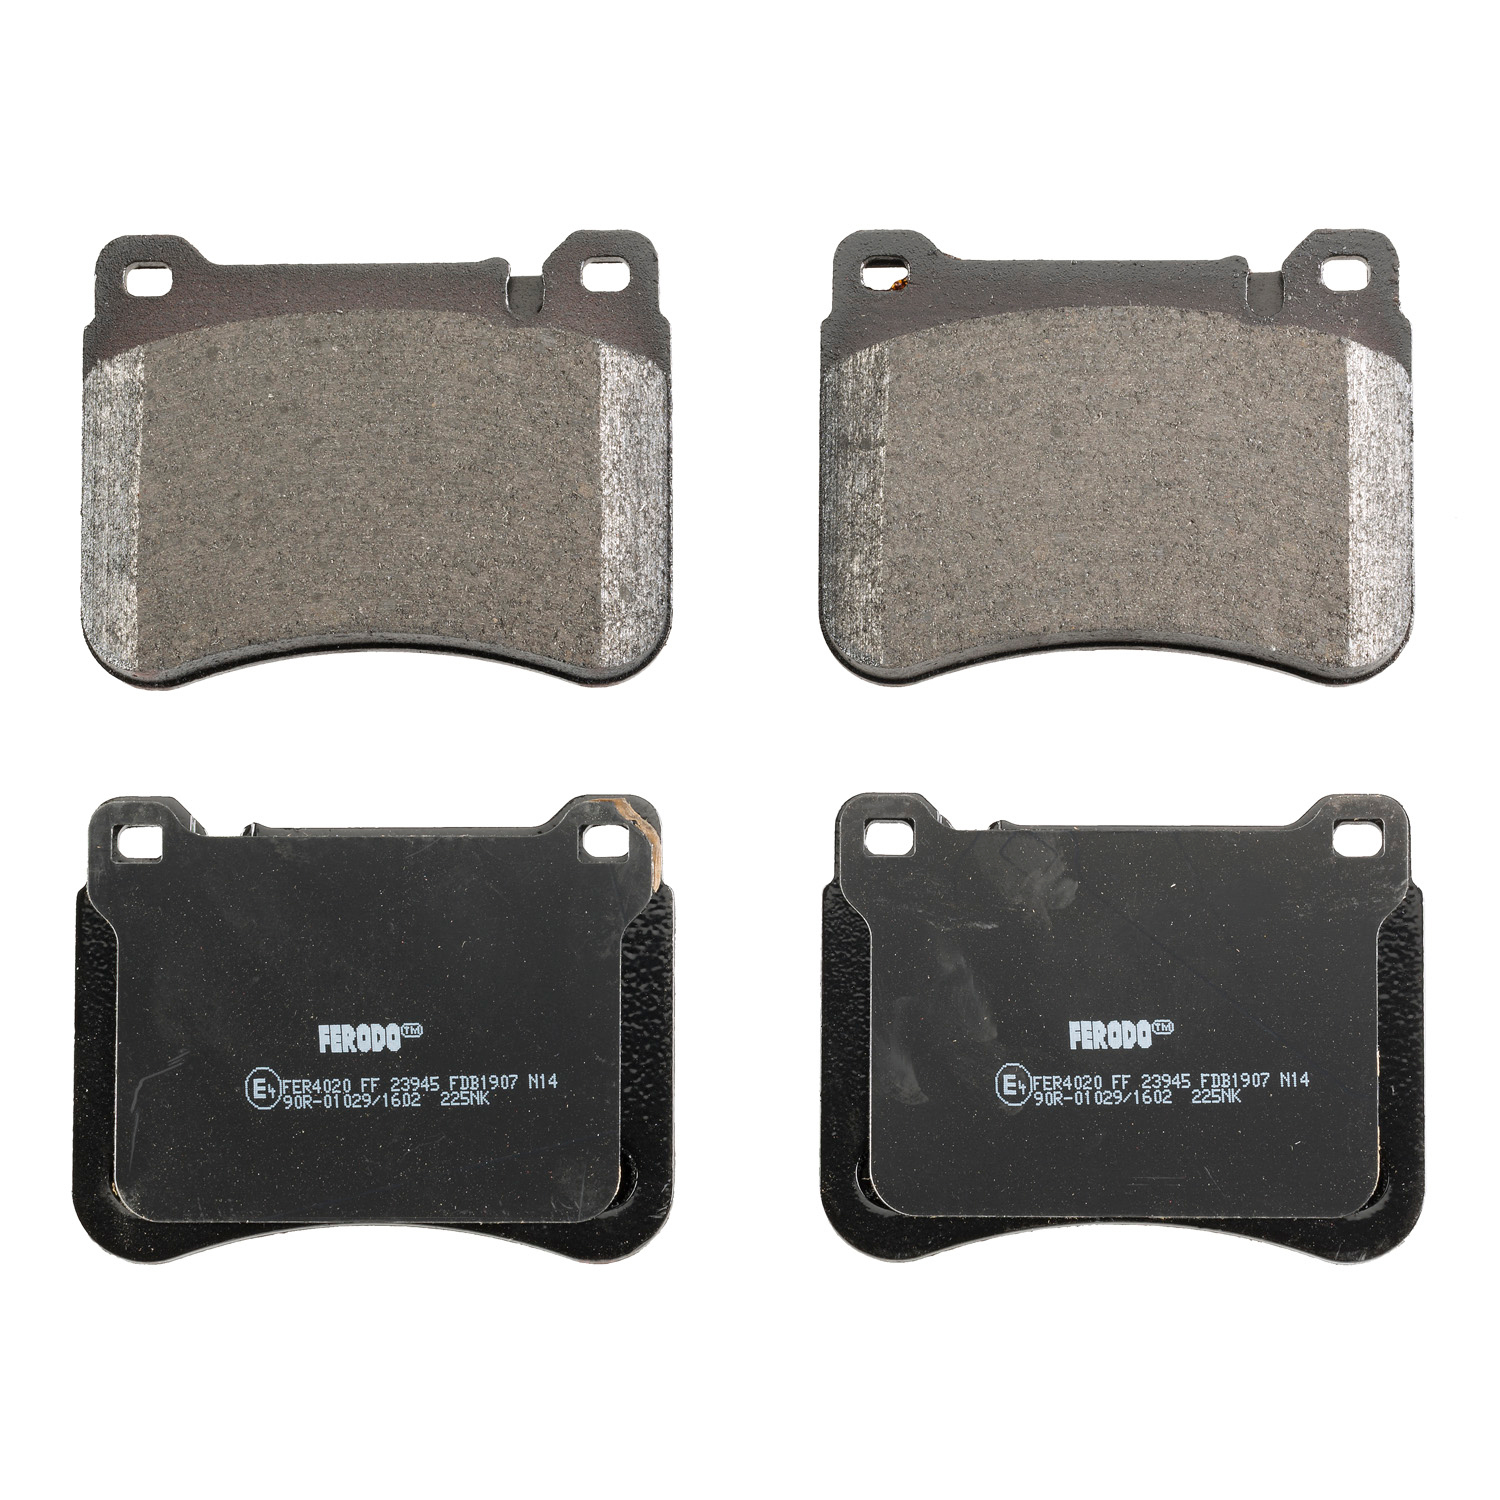 GGBAILEY D4200A-S1A-CH-BR Custom Fit Automotive Carpet Floor Mats for 1998 2000 1999 Passenger /& Rear 2002 Toyota Corolla Brown Driver 2001